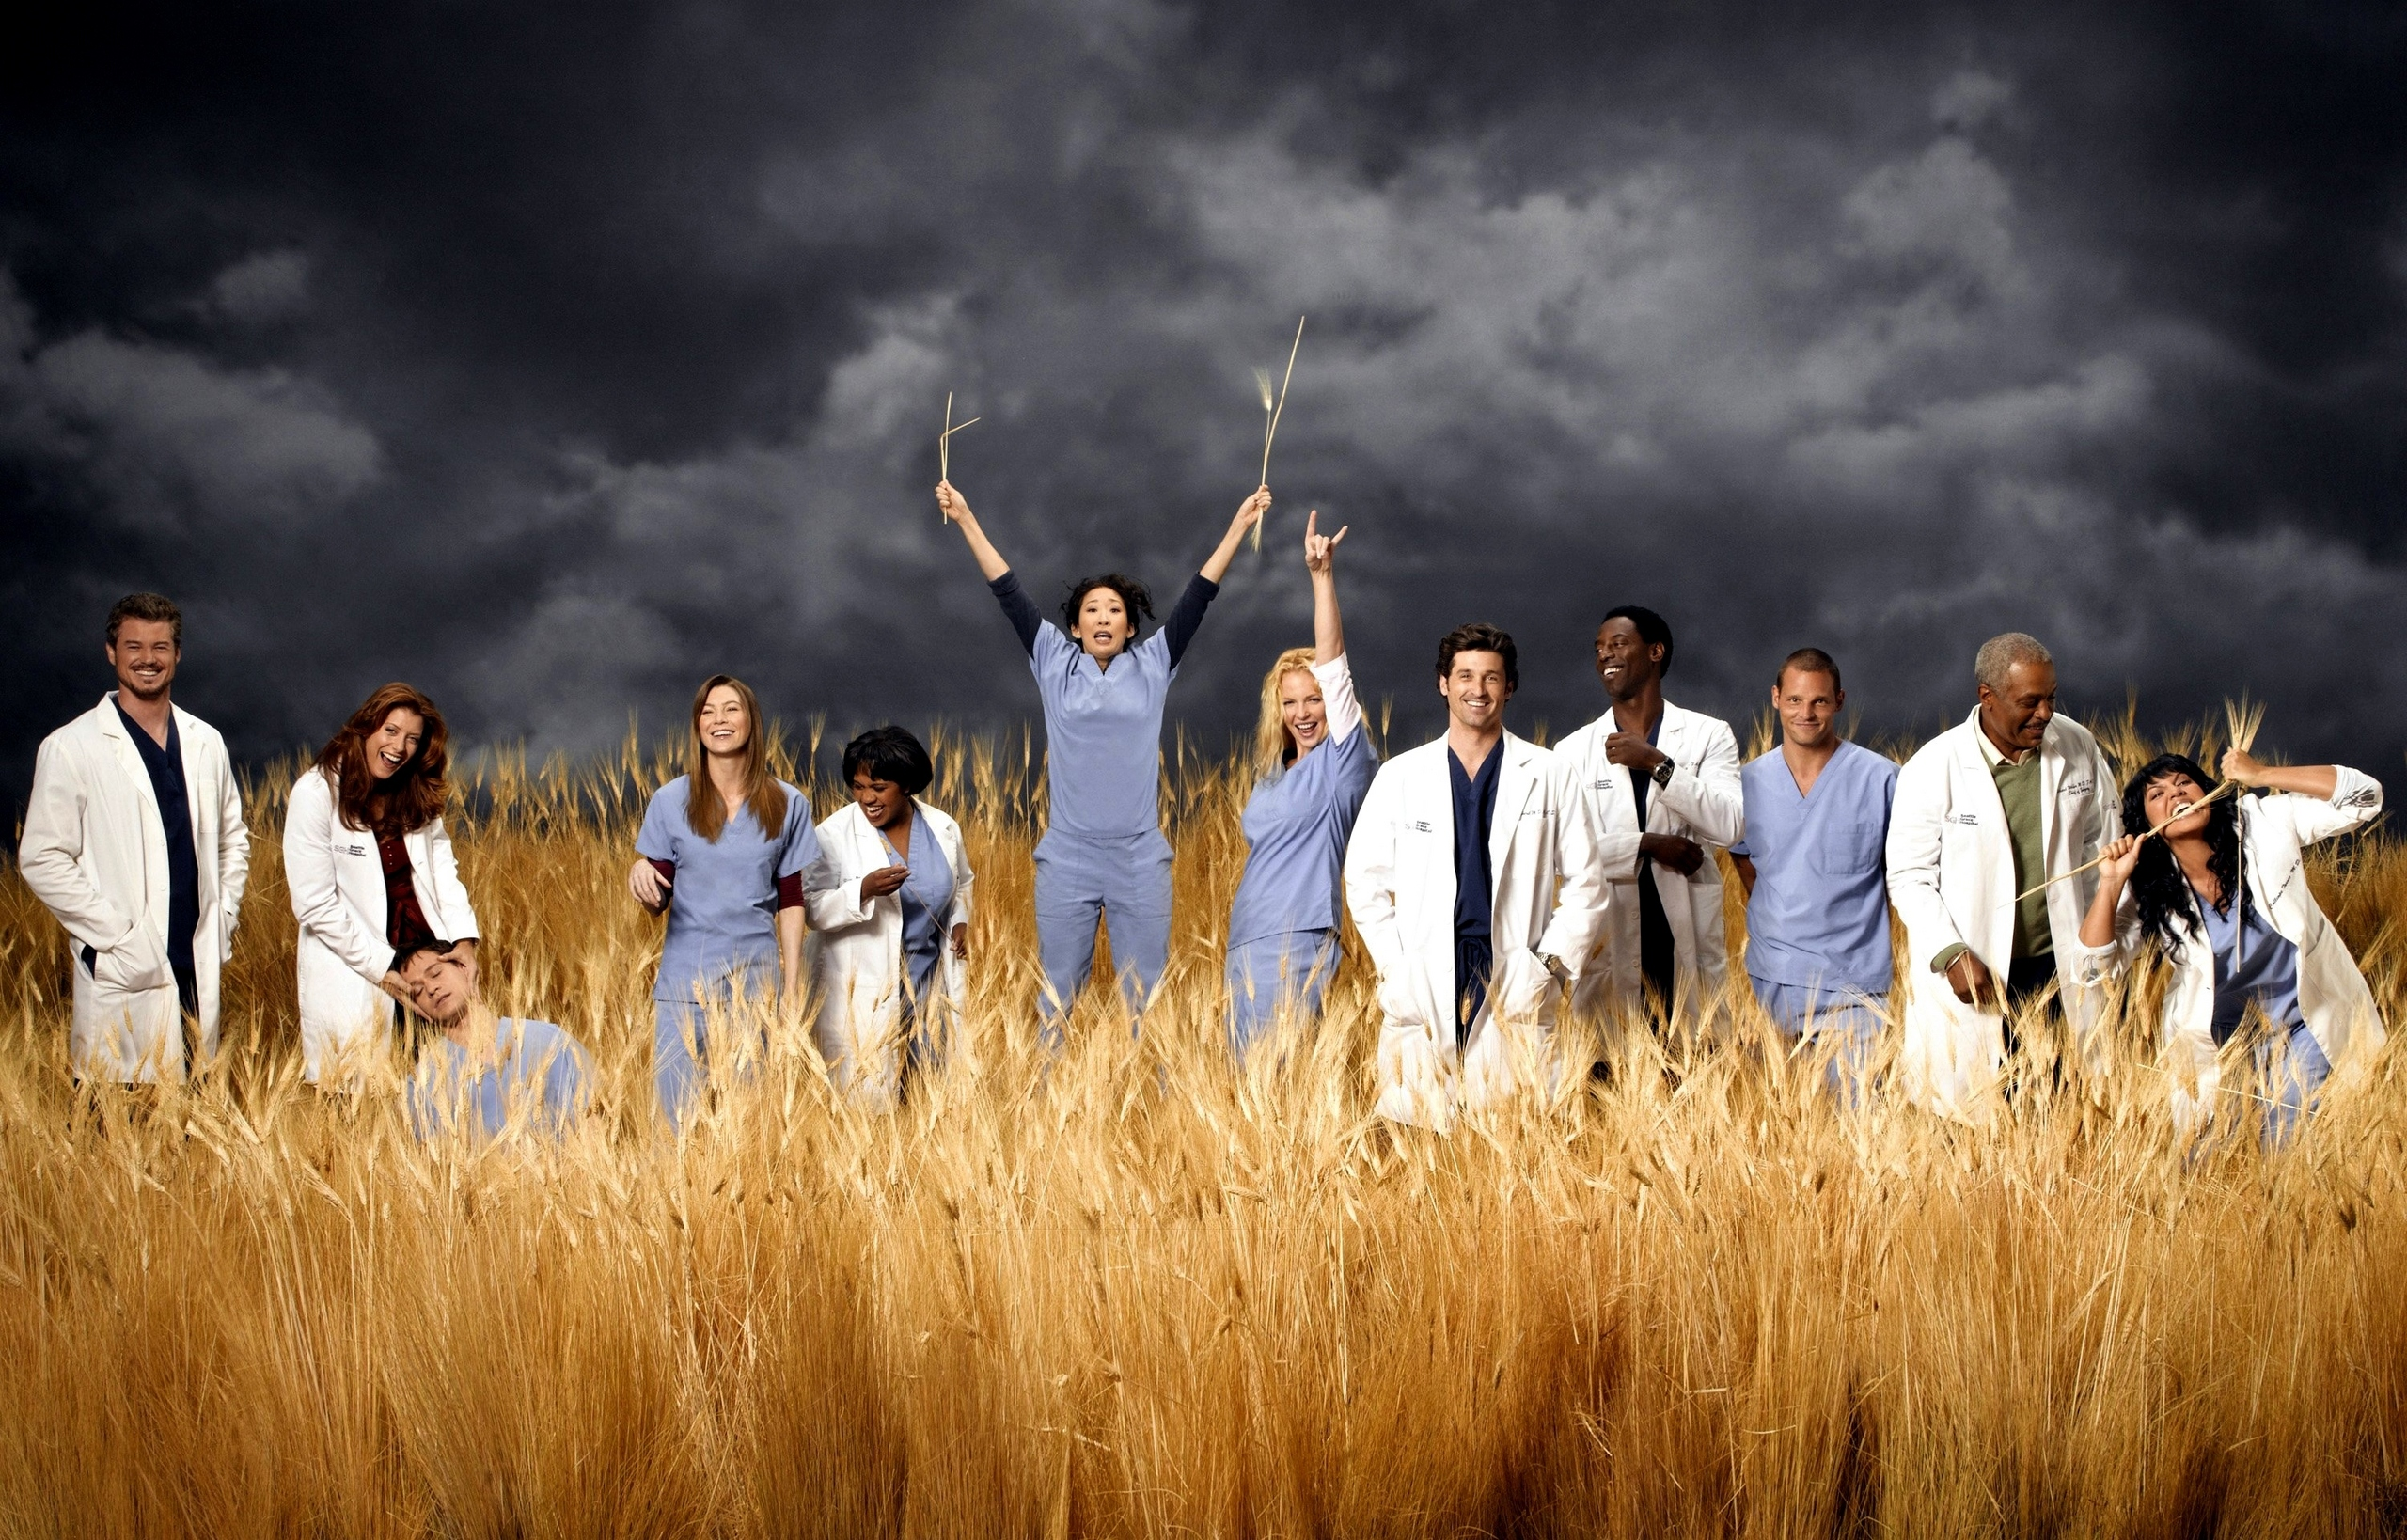 Grey\'s Anatomy Wallpapers High Quality | Download Free